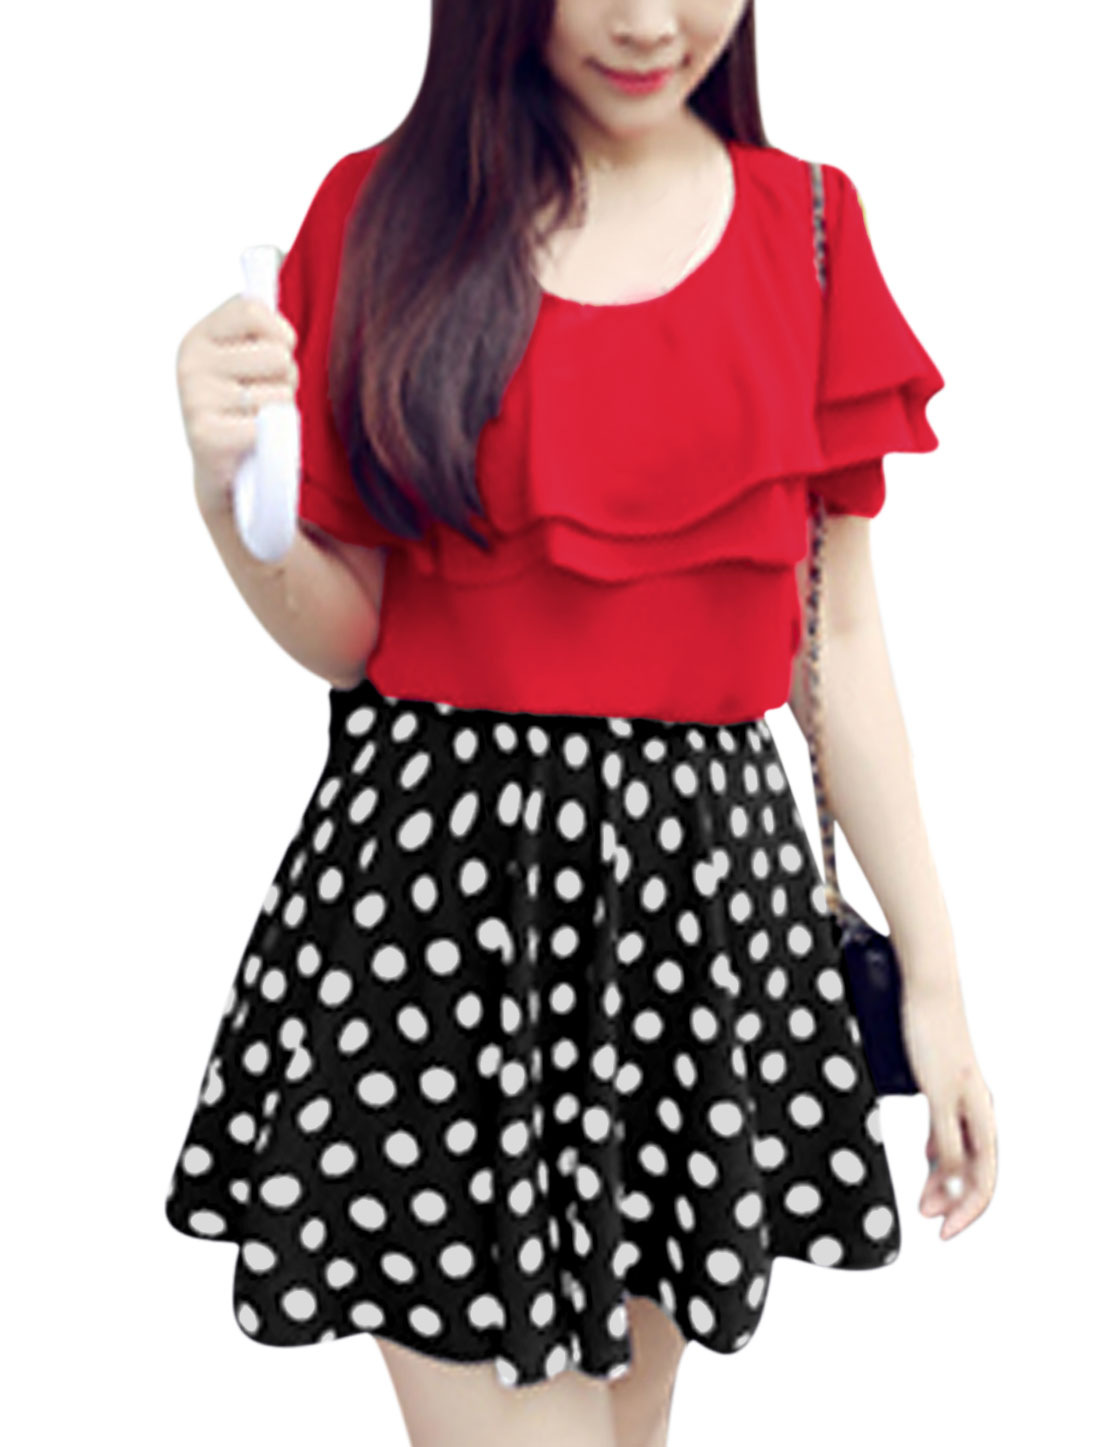 Lady Ruffled Design Chiffon Red Top w Dots Prints Skort Black S